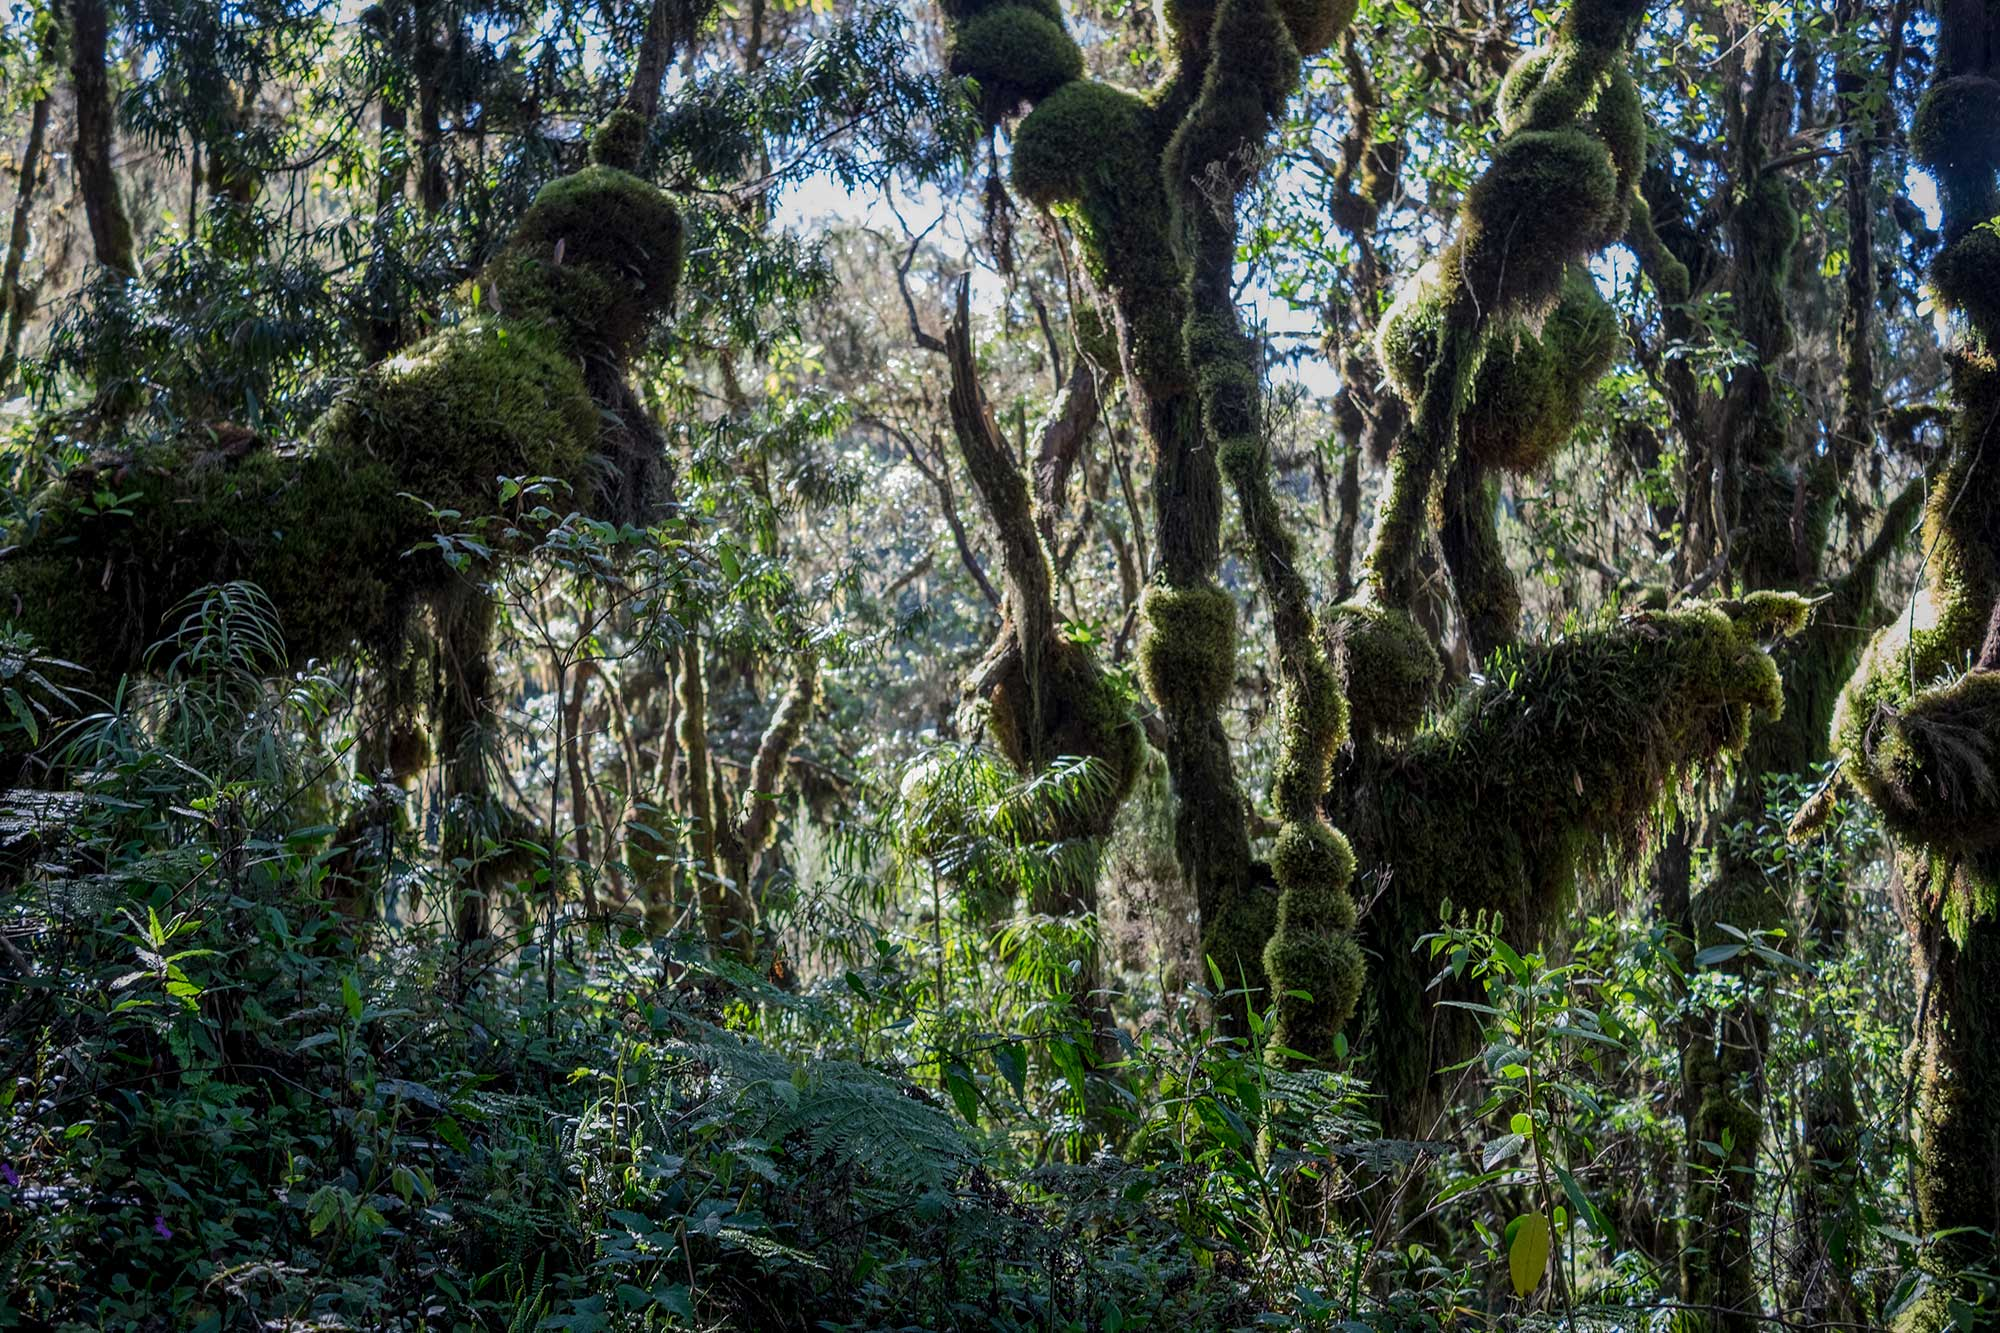 After spending days above the tree line, the return to the jungle felt even more foreign and exotic than the beginning of the trip.